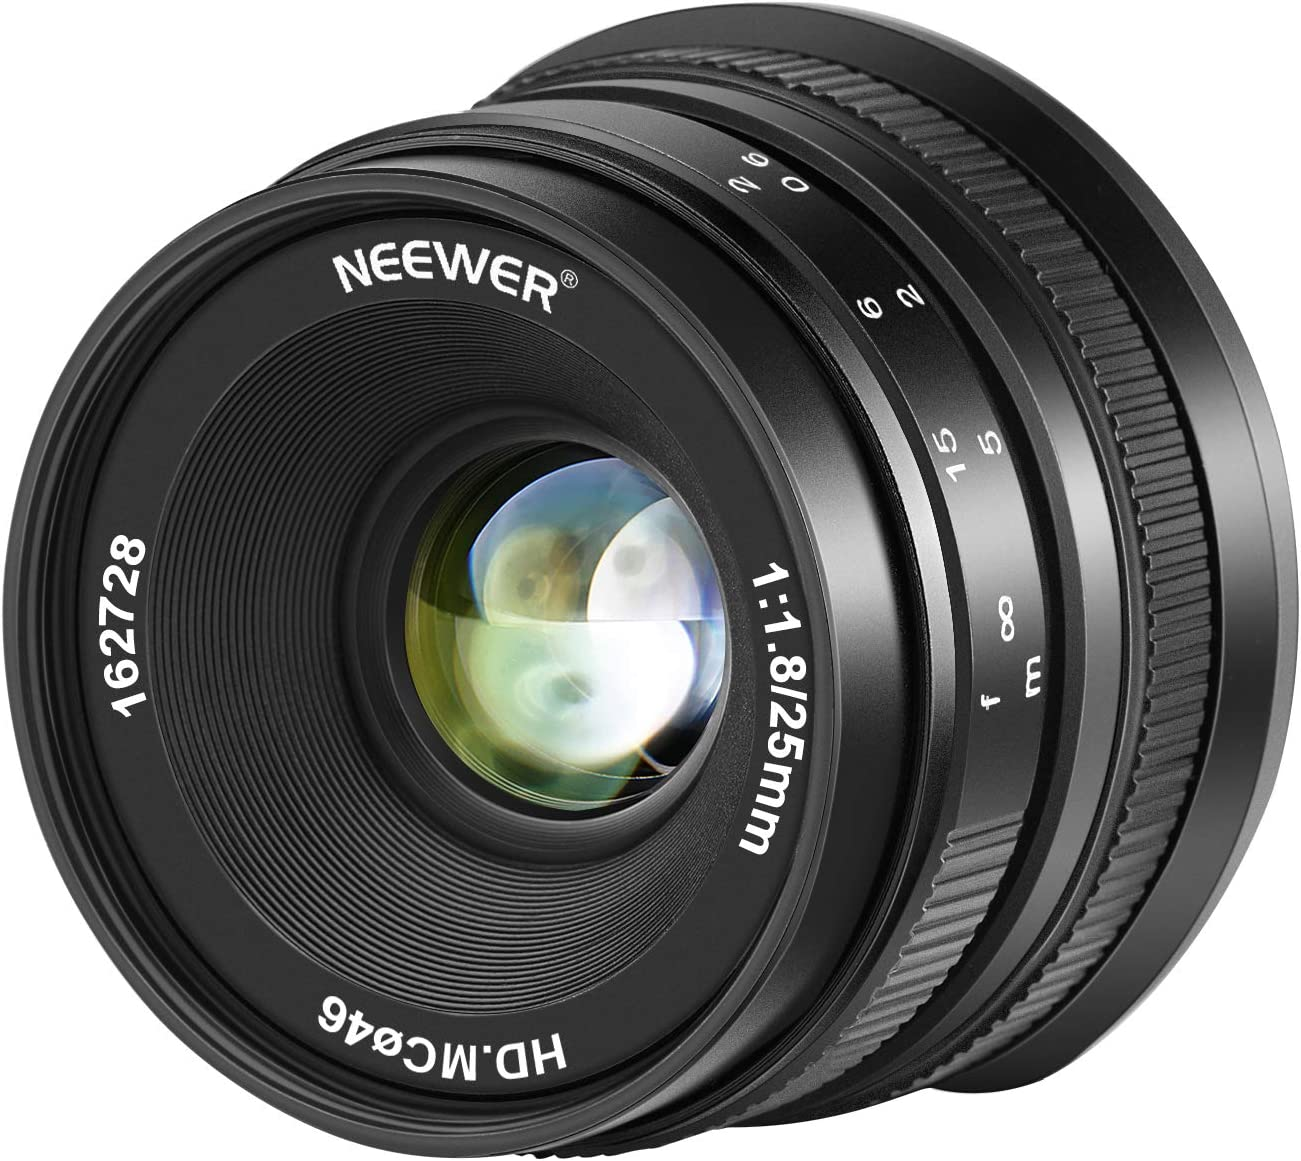 Neewer lente gran angular 1.8 gran apertura 25mm